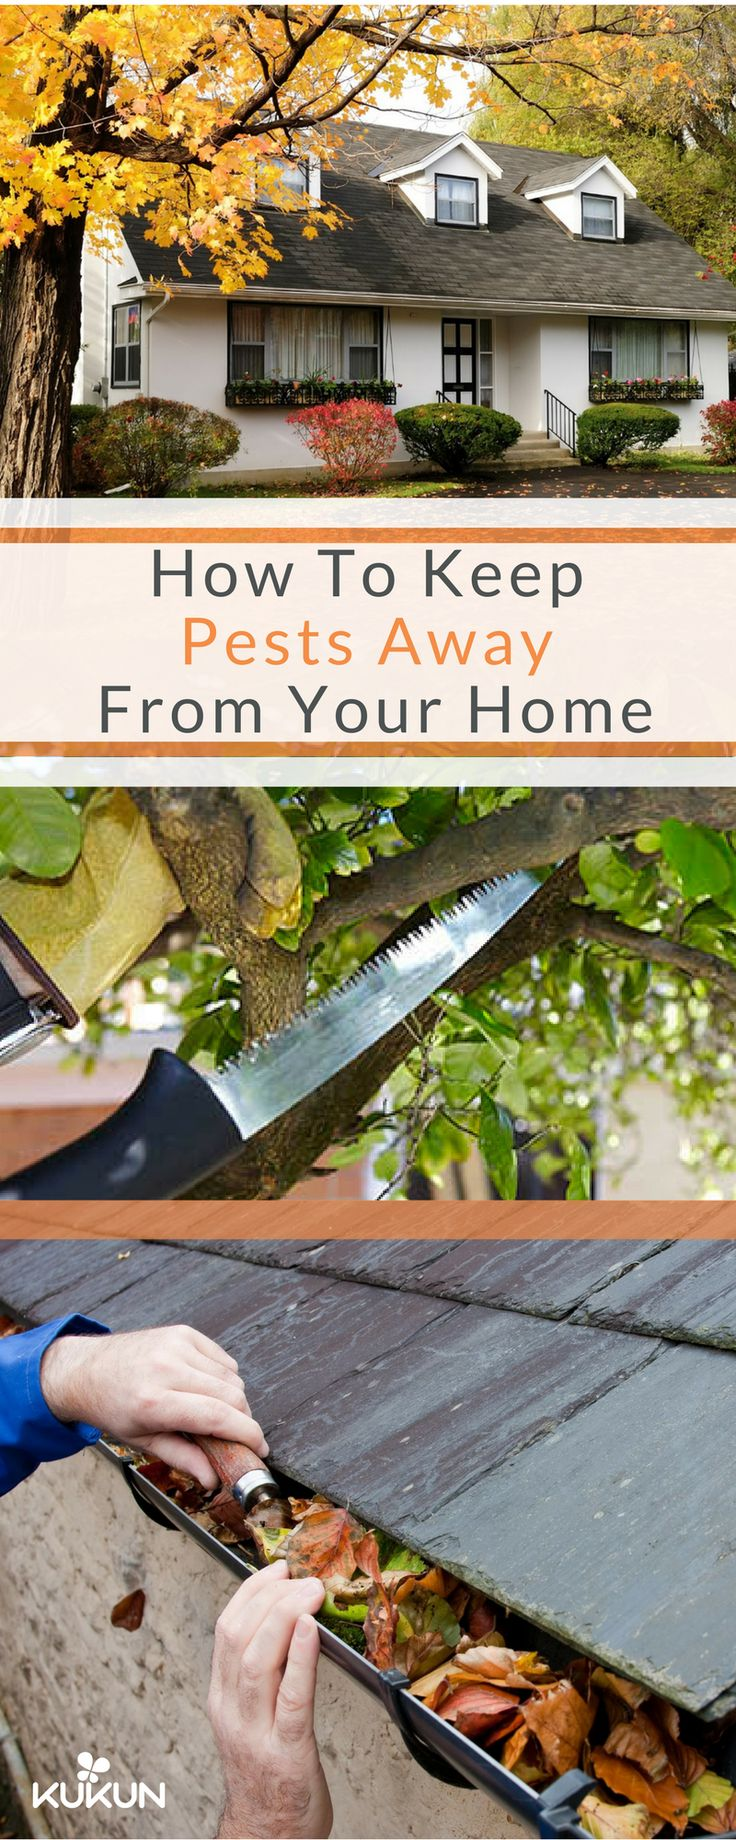 Pests are best dealt with pre-emptively, knowing what causes them and taking care of it will help you control this problem in the future and maybe even take care of it completely, so read our in-depth guide on pest control! [Pest Control, Cleaning Gutters, How To Keep Pests Away, How To Keep Pest Out Of House, Pest Control Tips, Cutting Off Branches, Trimming Shrubs, Garden Planning]